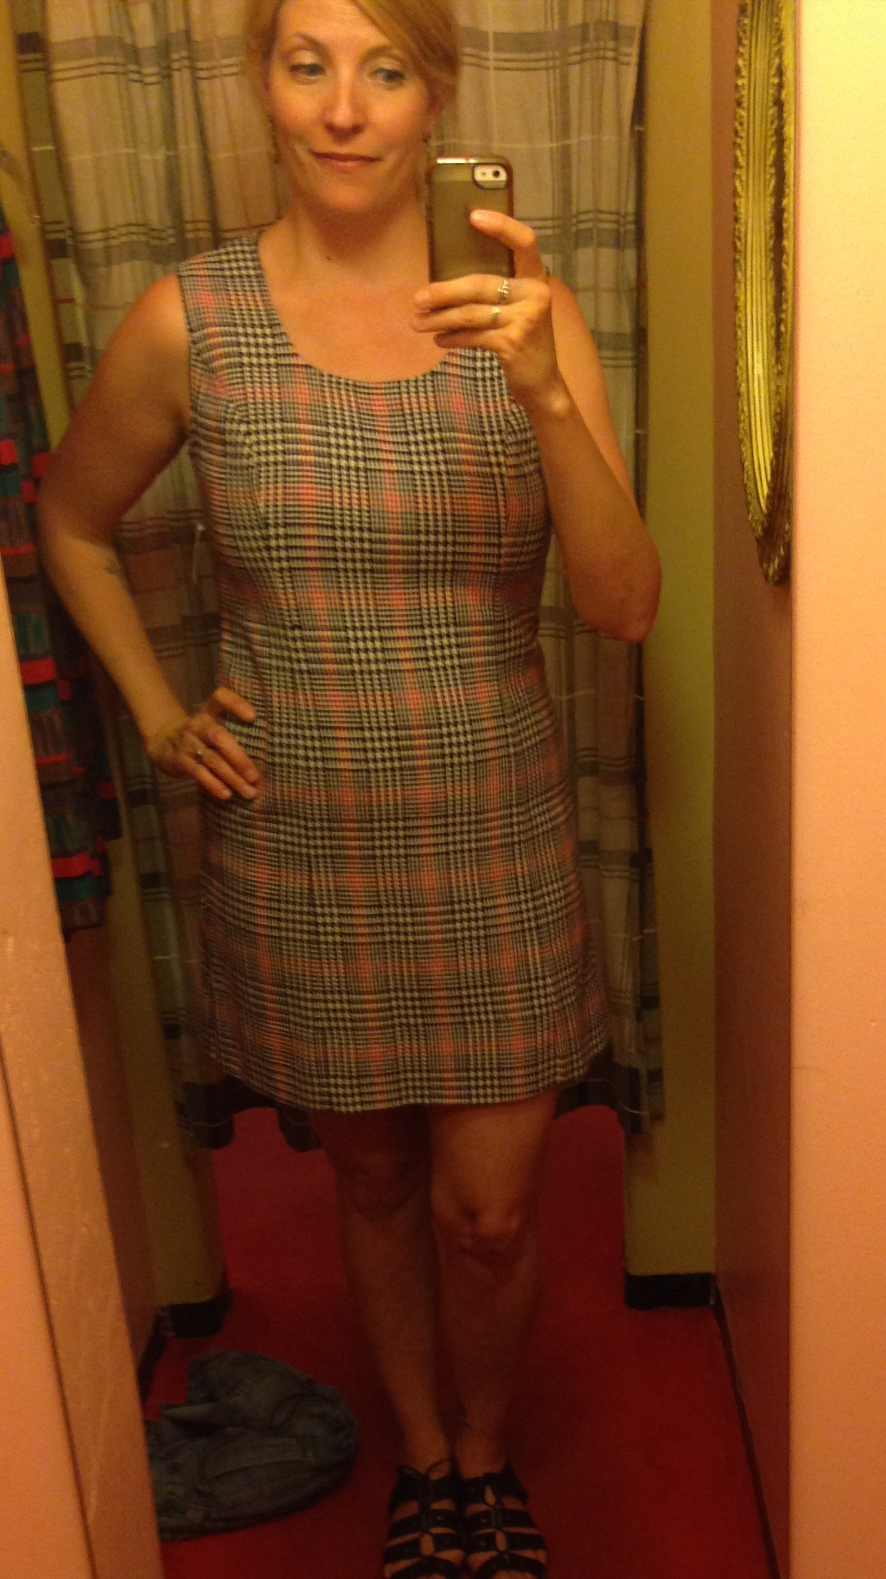 Wool dress - so very cute but so very short.